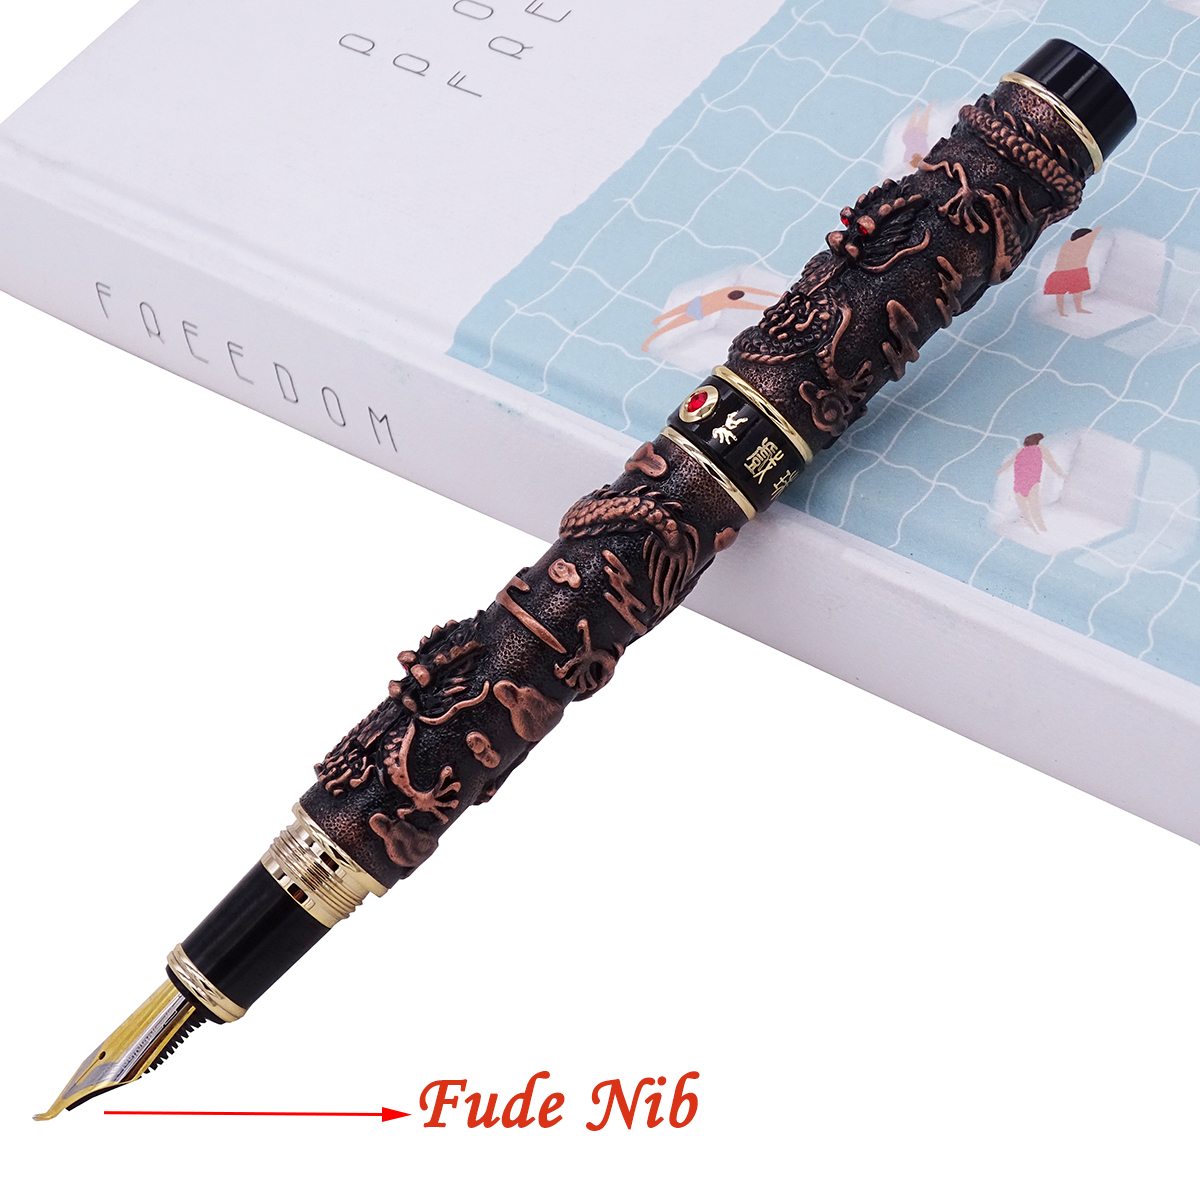 Jinhao Vintage Red Copper Fountain Pen Double Dragon Calligraphy Fude Nib Metal Carving Embossing Heavy Gift Pen CollectionJinhao Vintage Red Copper Fountain Pen Double Dragon Calligraphy Fude Nib Metal Carving Embossing Heavy Gift Pen Collection